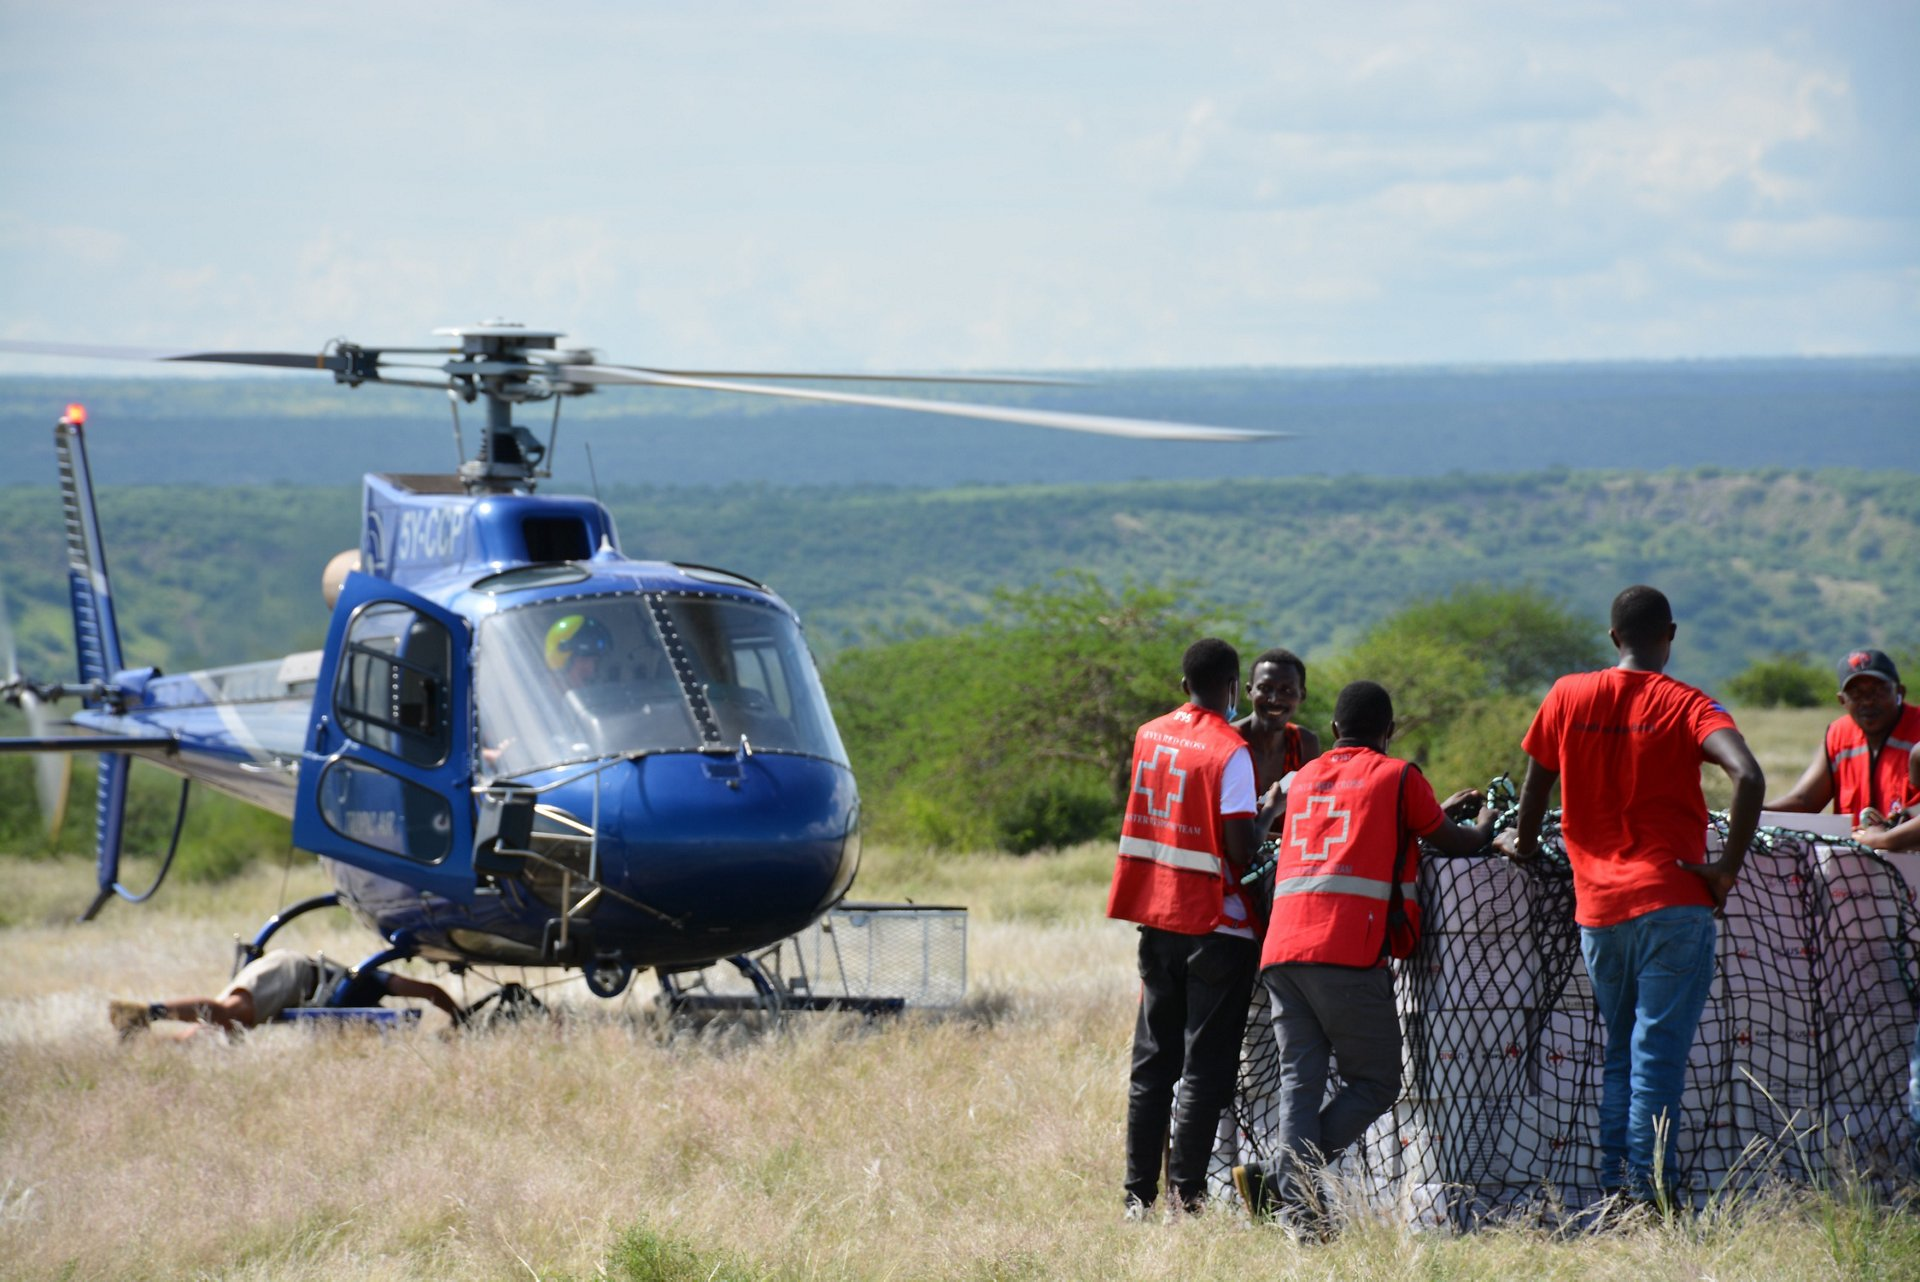 A H125 from Tropic Air Kenya transporting KRCS personnel conducted an aerial assessment mission in Garissa and Tana River County to strengthen the response and provide aid delivery.